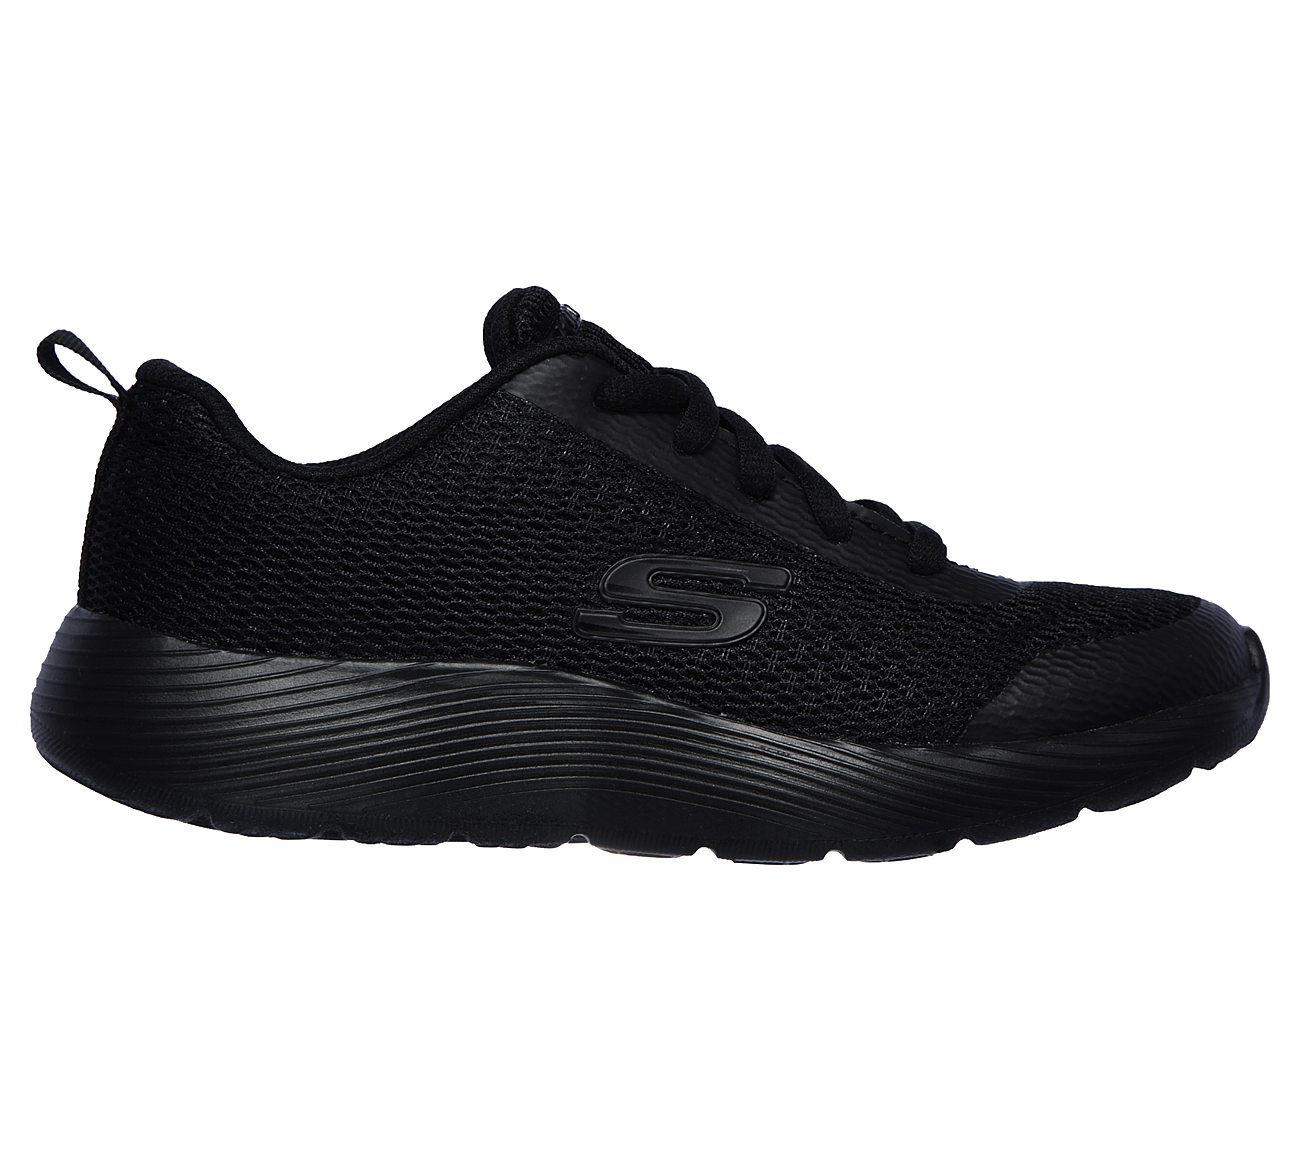 SKECHERS Dyna-Lite Lace-Up Sneakers Shoes